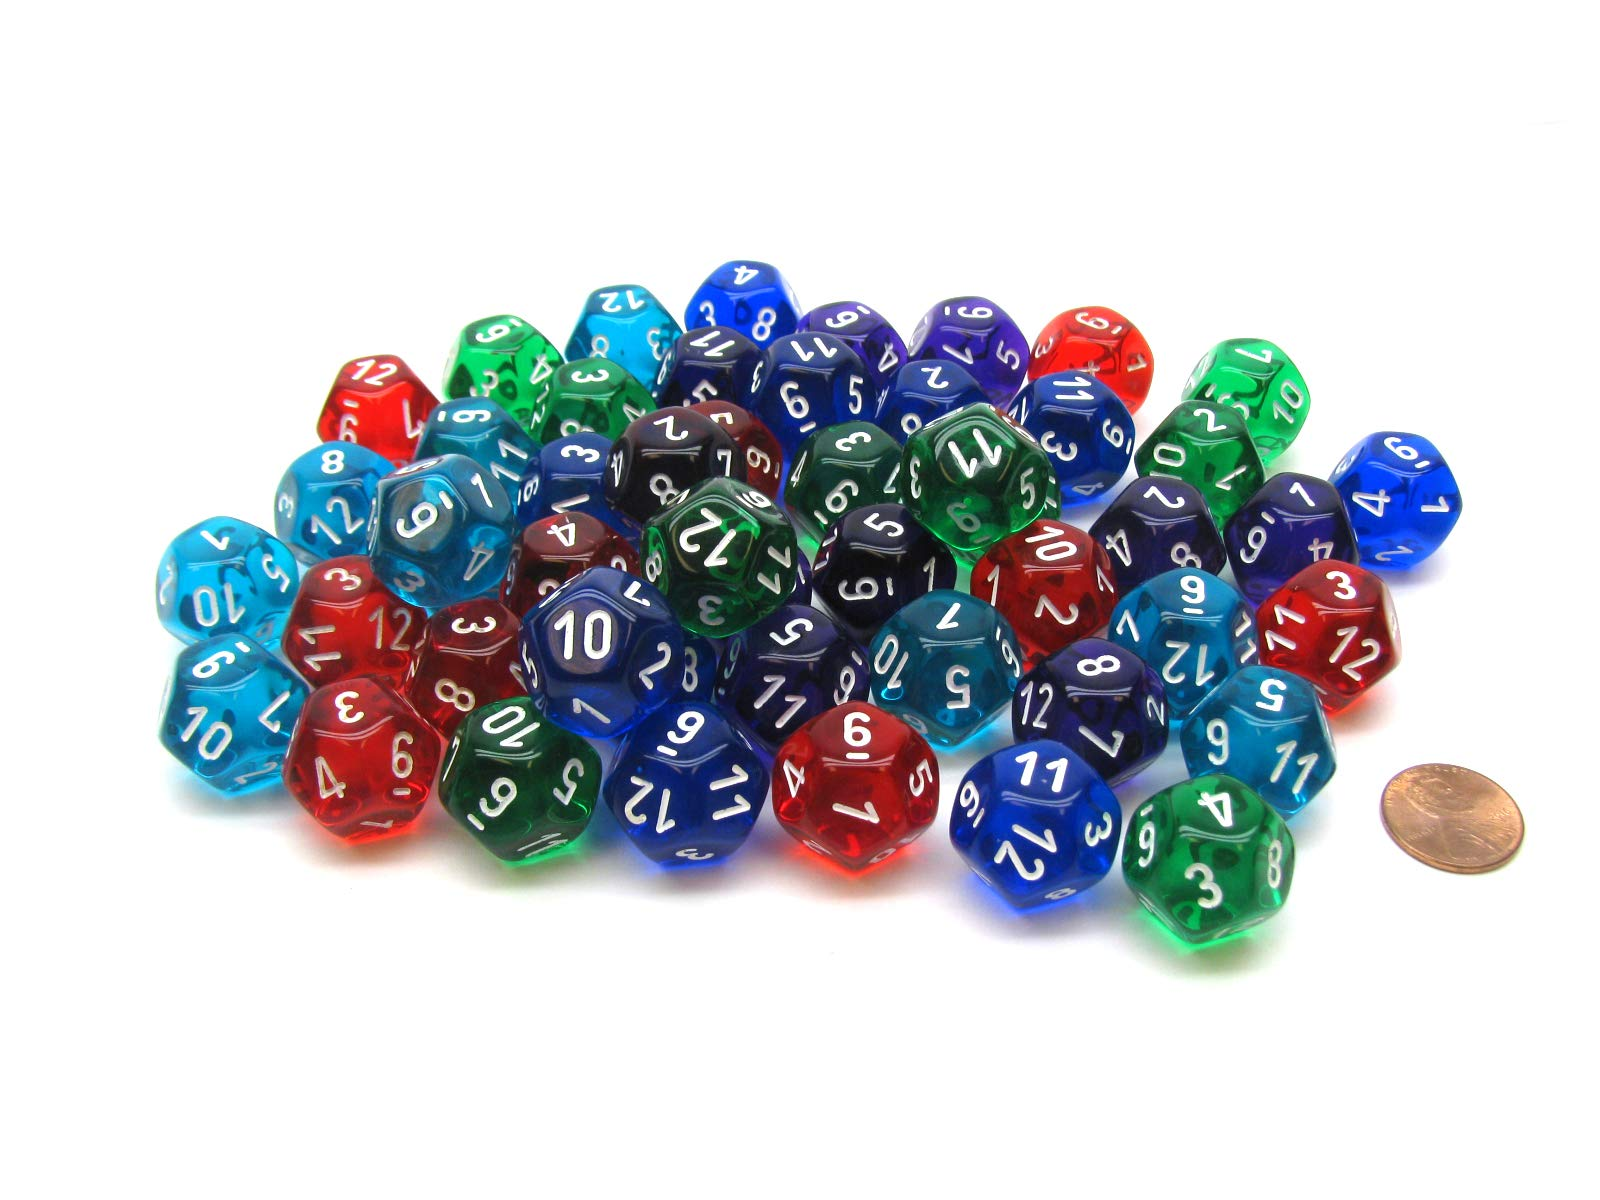 Chessex Limited Edition Bag of 50 Assorted Loose Translucent Polyhedral D12 Dice